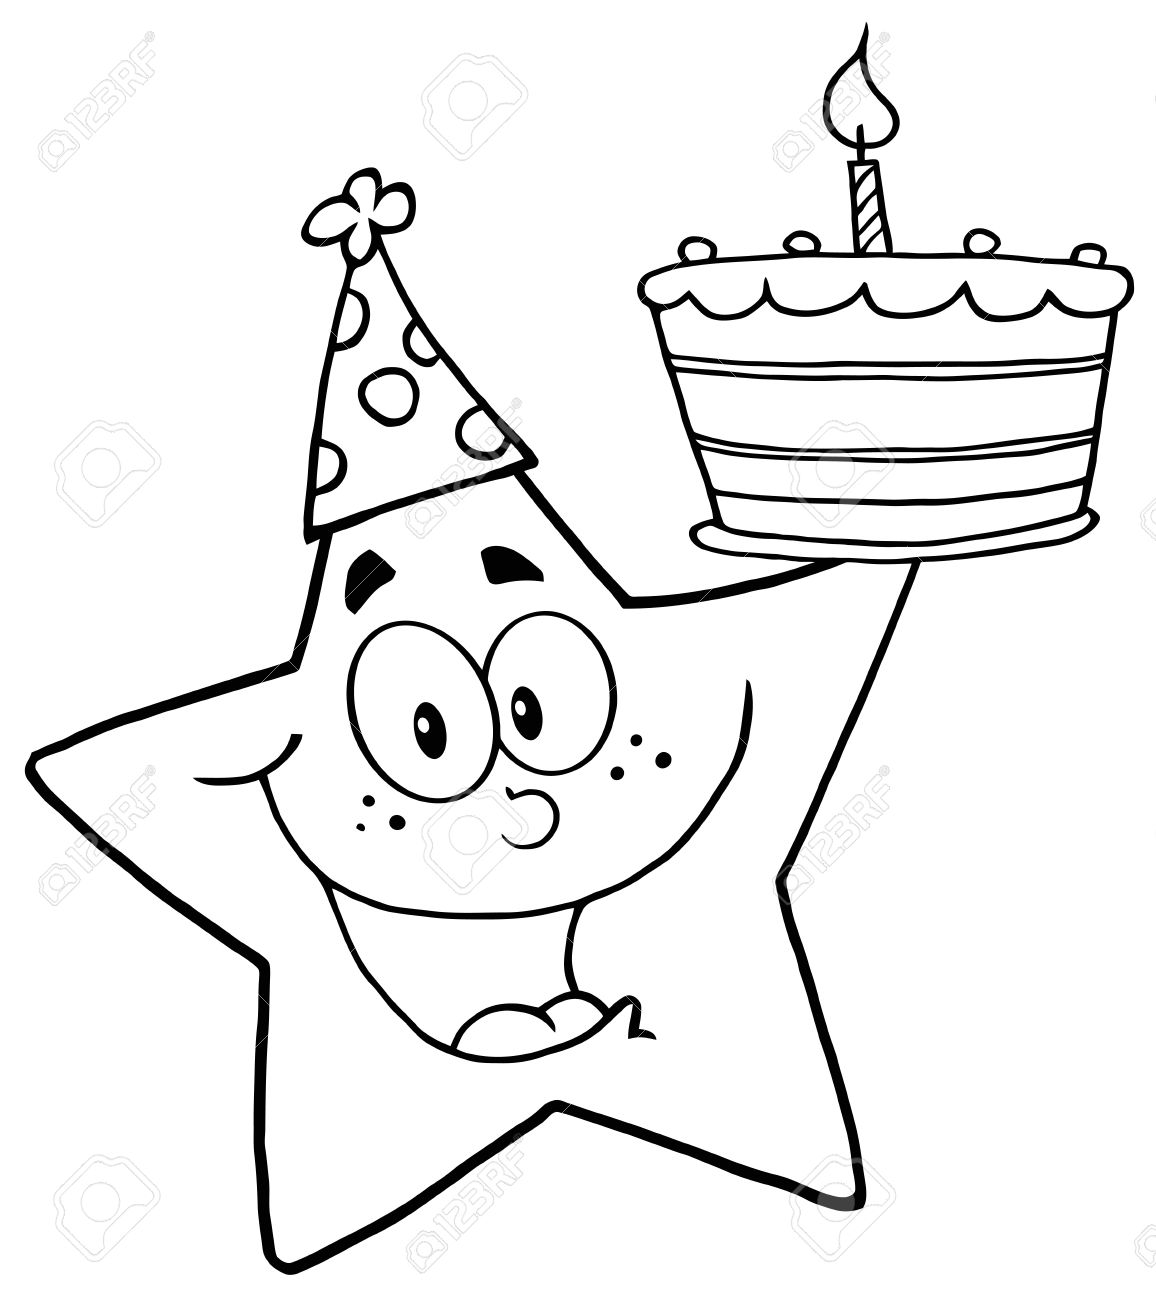 1156x1300 Outline Happy Star Holding A Birthday Cake Royalty Free Cliparts